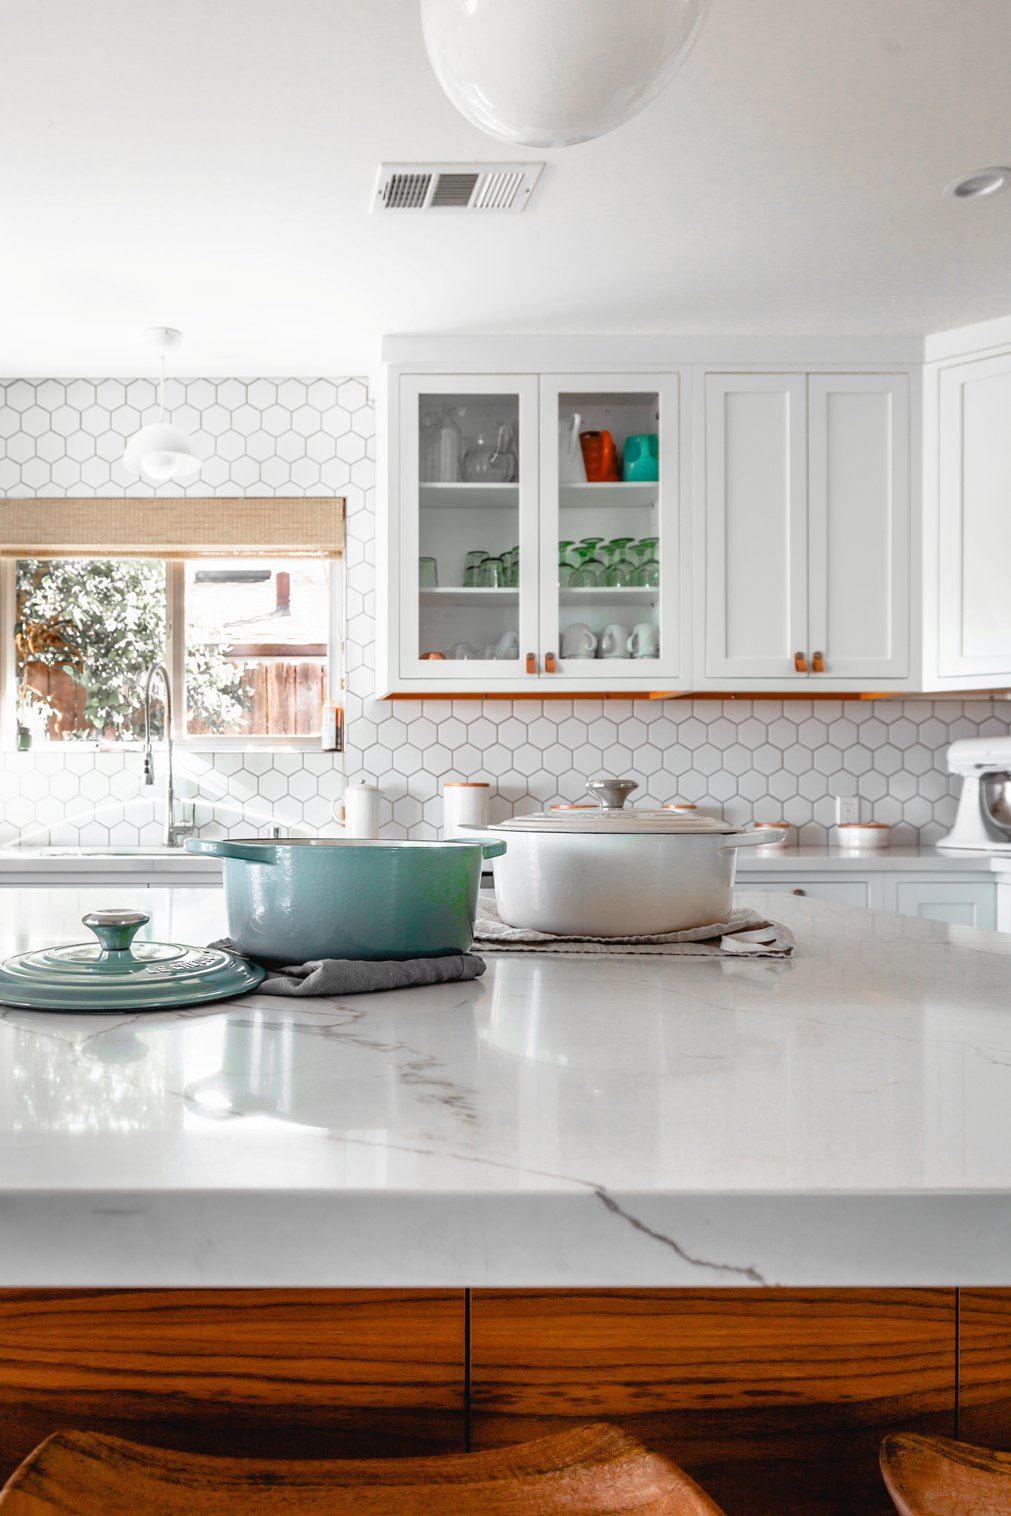 Making the most of your kitchen space: 4 practical tips